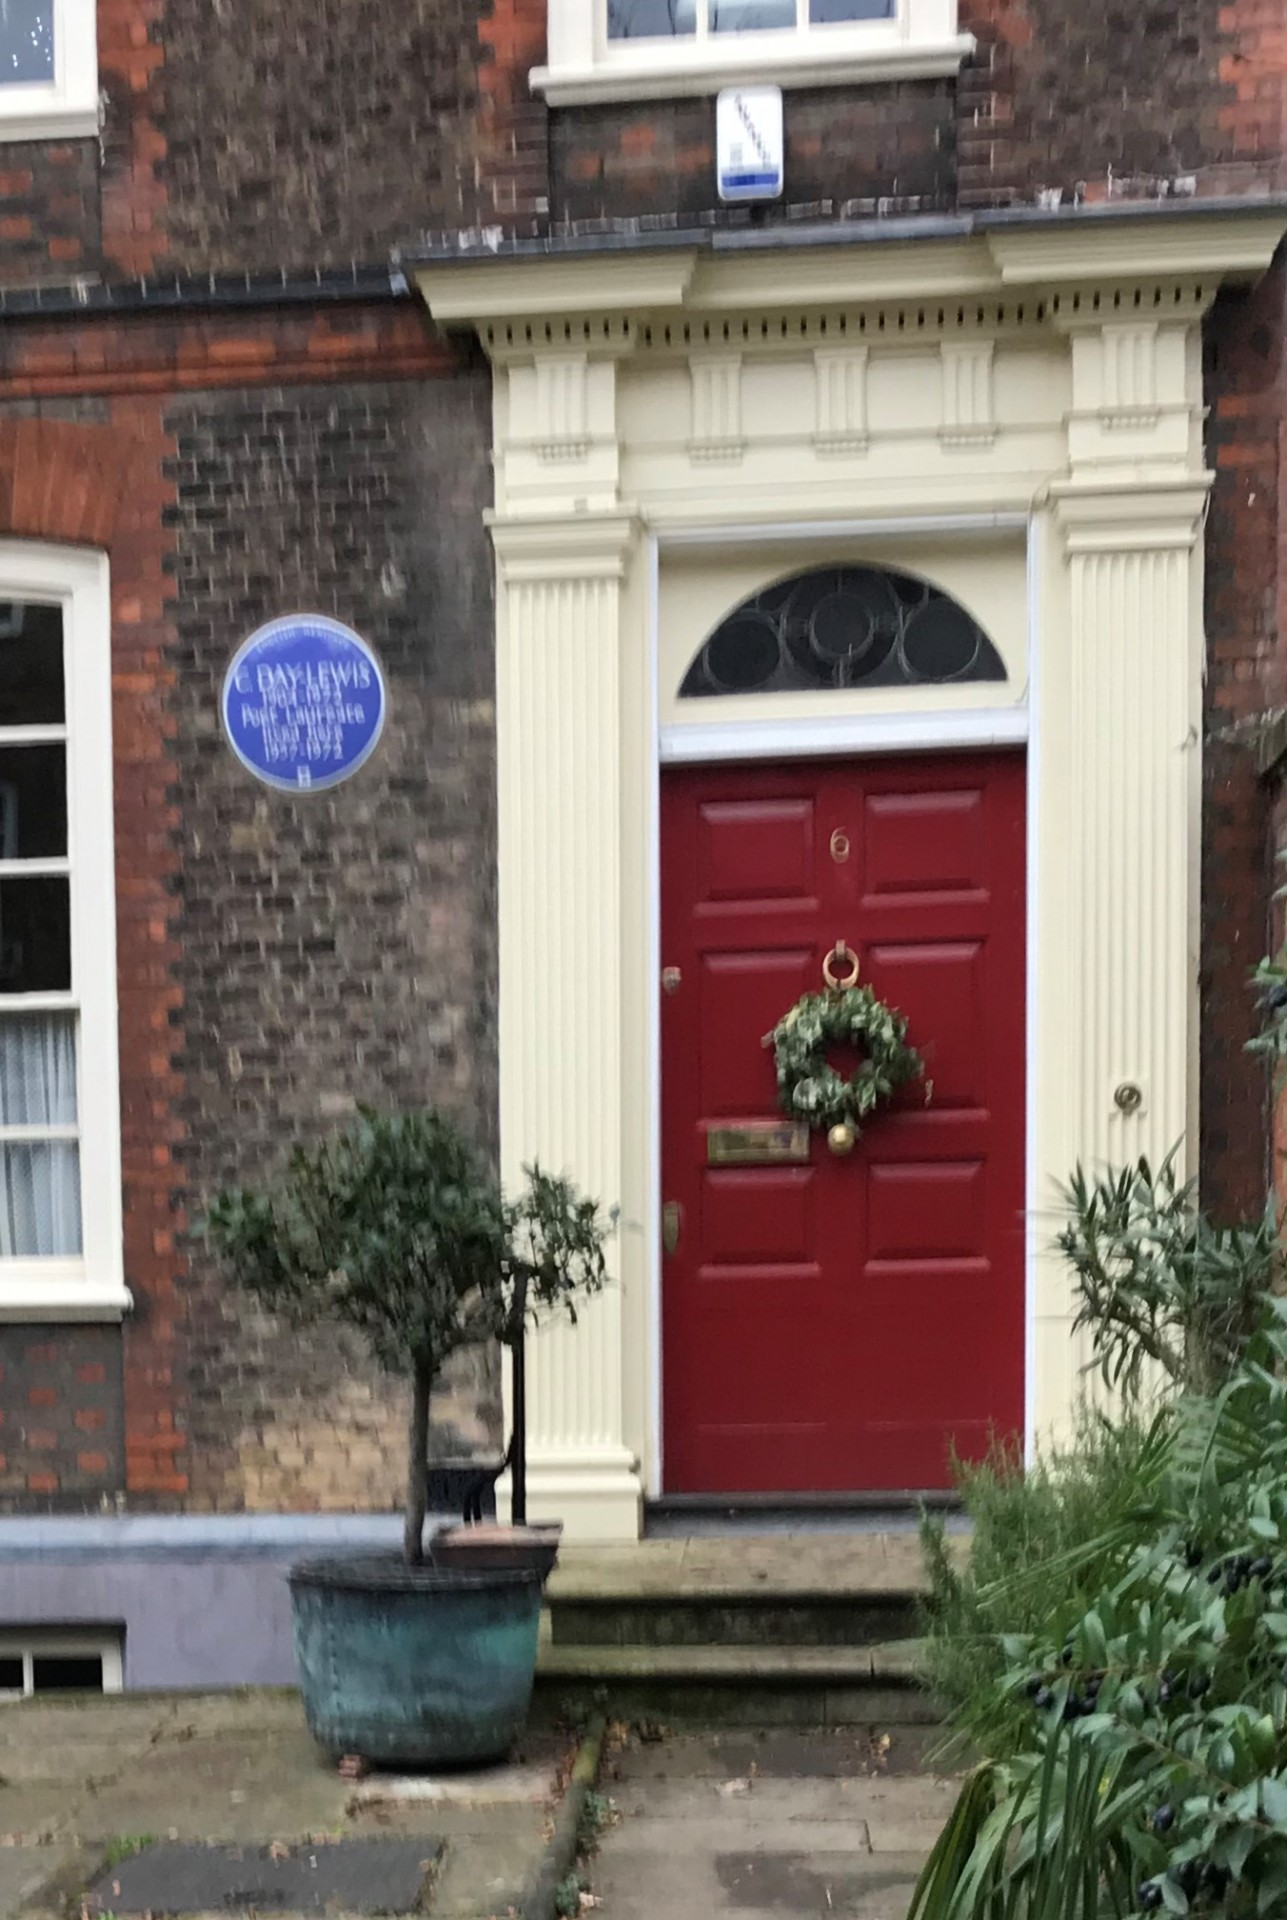 cecil day lewis plaque